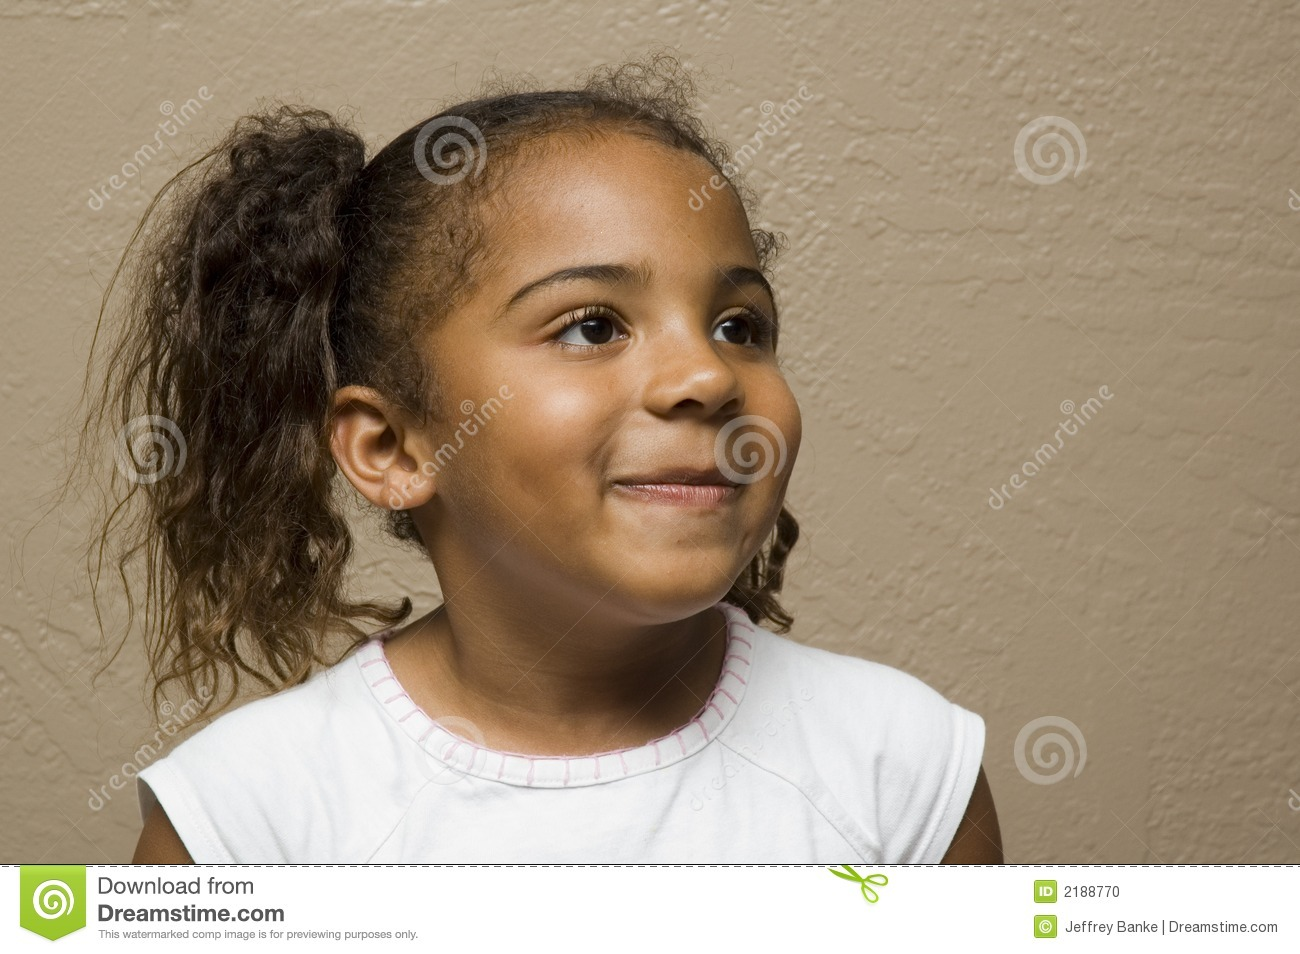 Cute African American Child Stock Photo Image 2188770